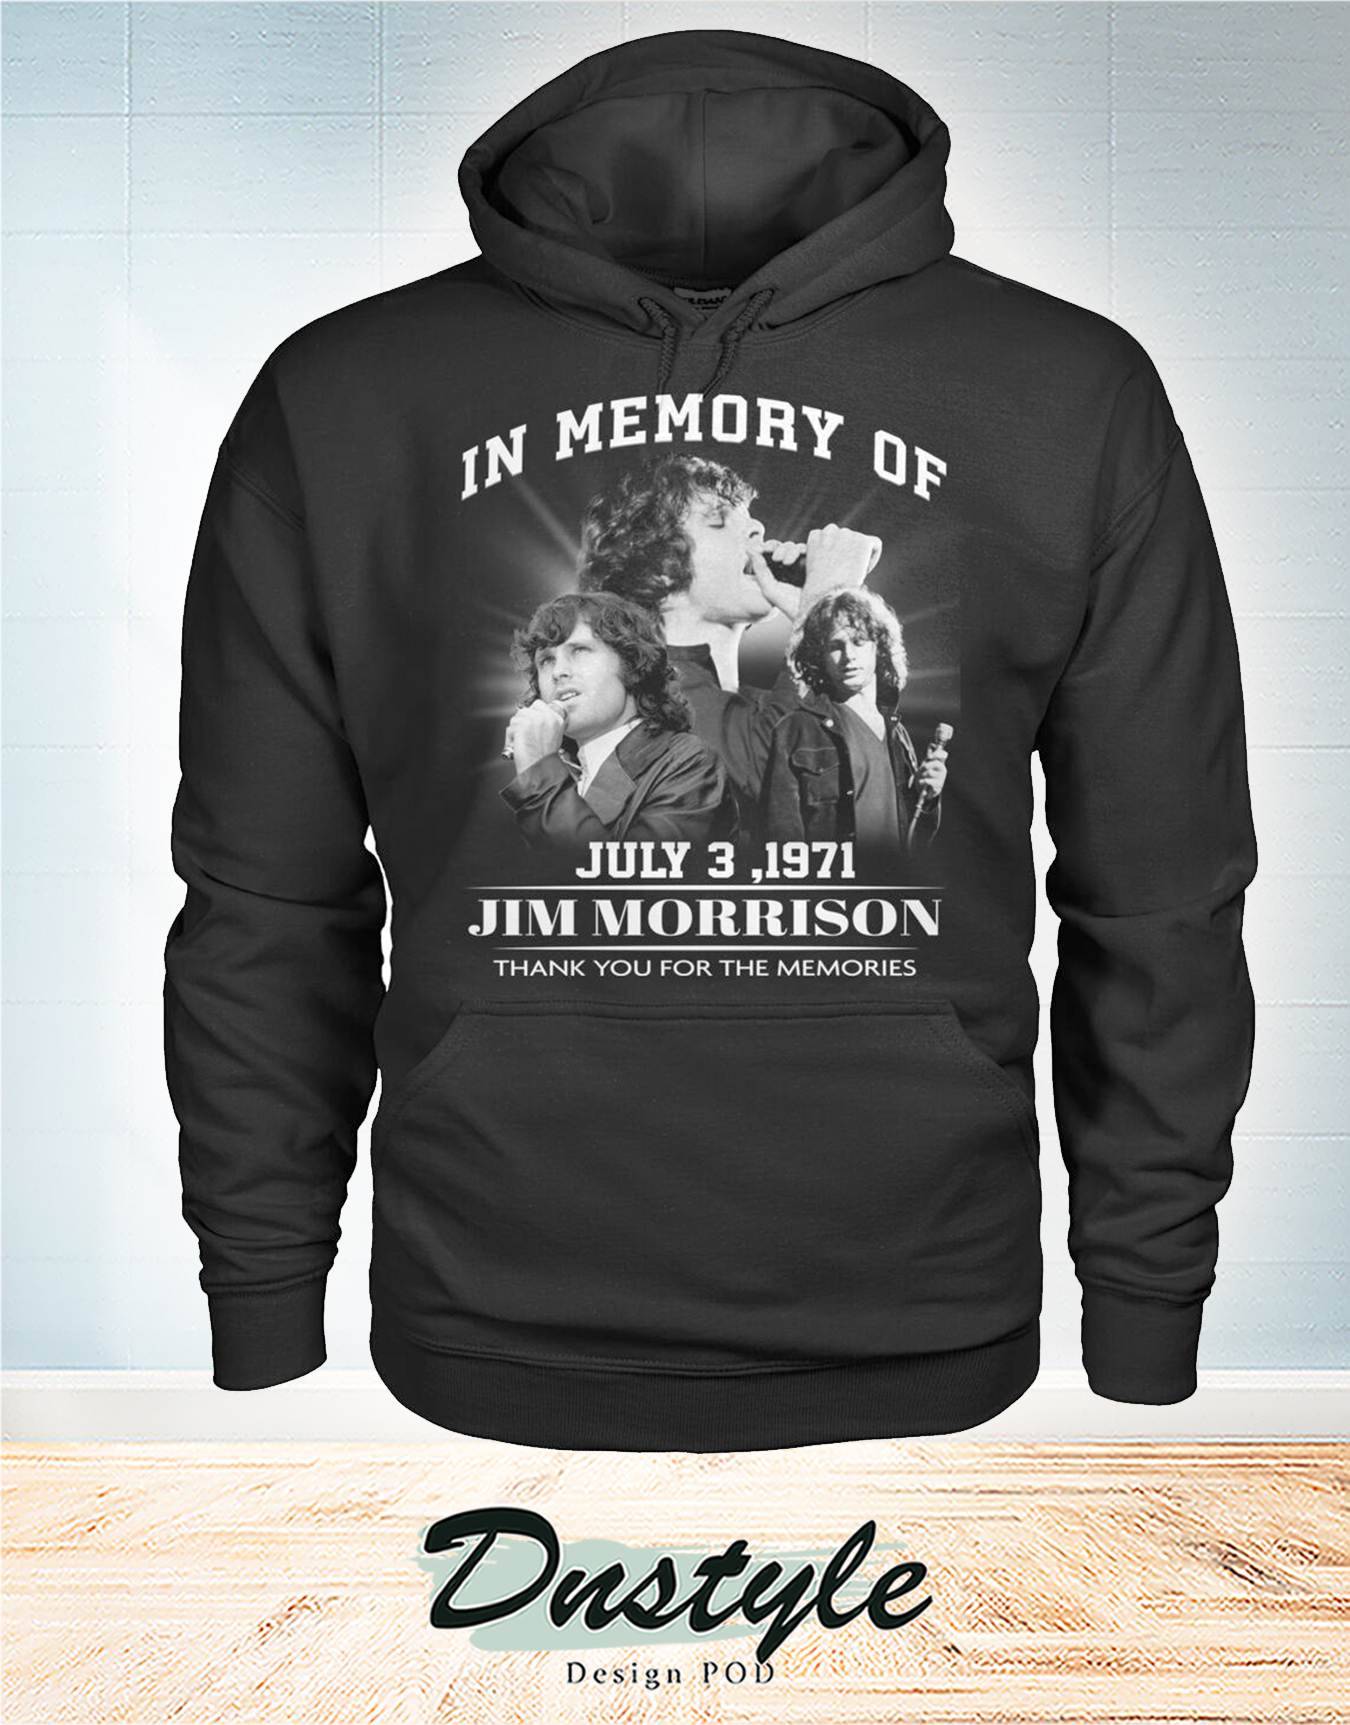 The doors In memory of Jim Morrion july 3 1971 thank you for the memories hoodie